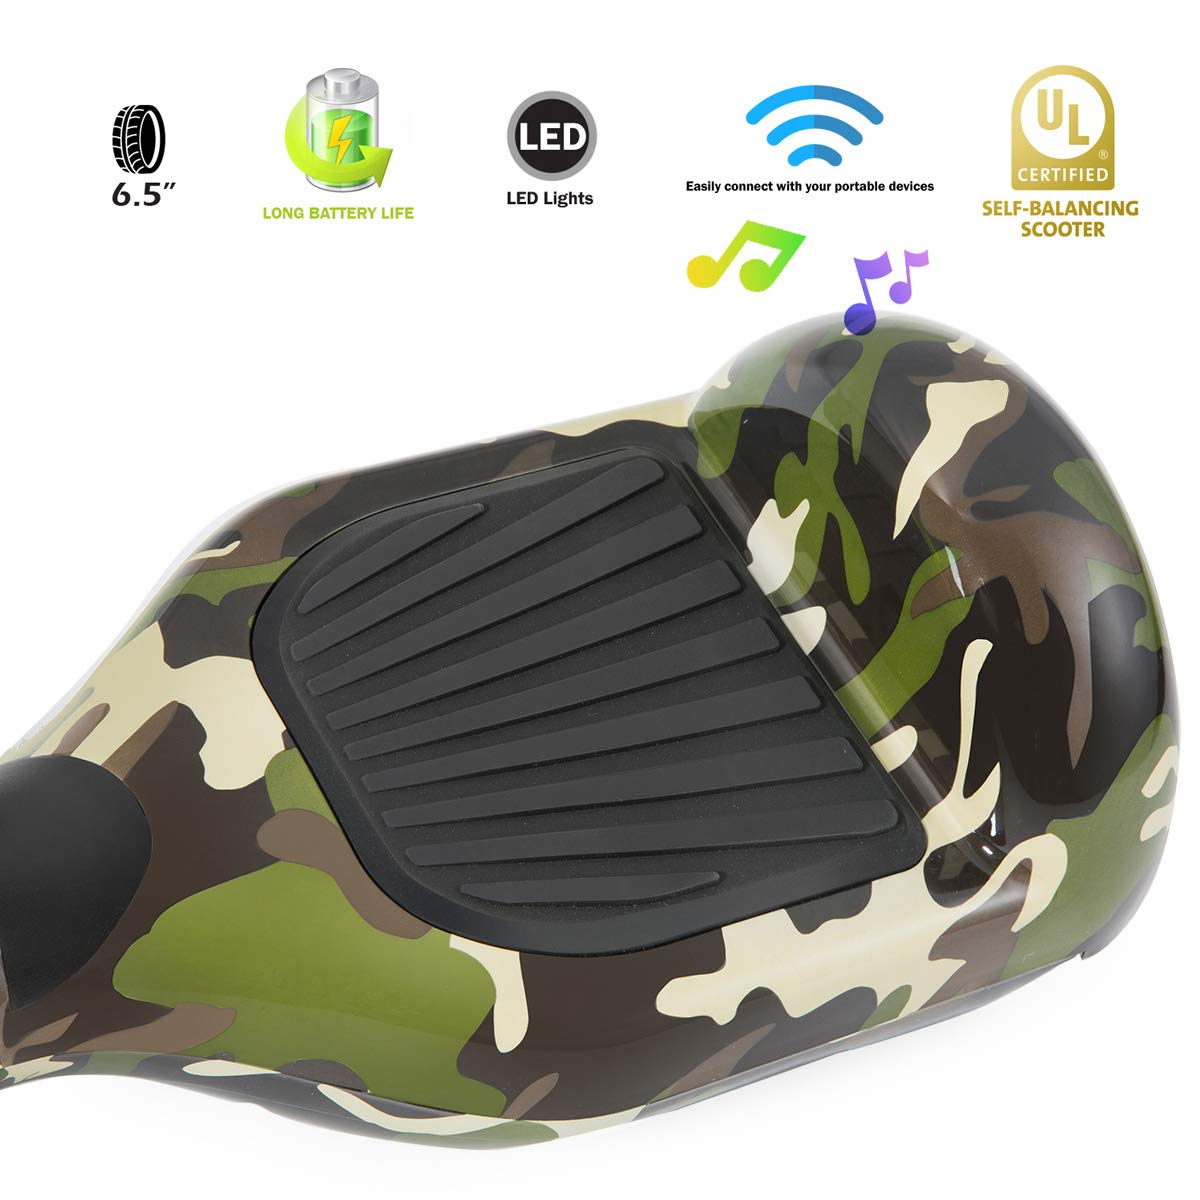 XPRIT Easter Sale Hoverboard w/Bluetooth Speaker (Camouflage) by XPRIT (Image #5)